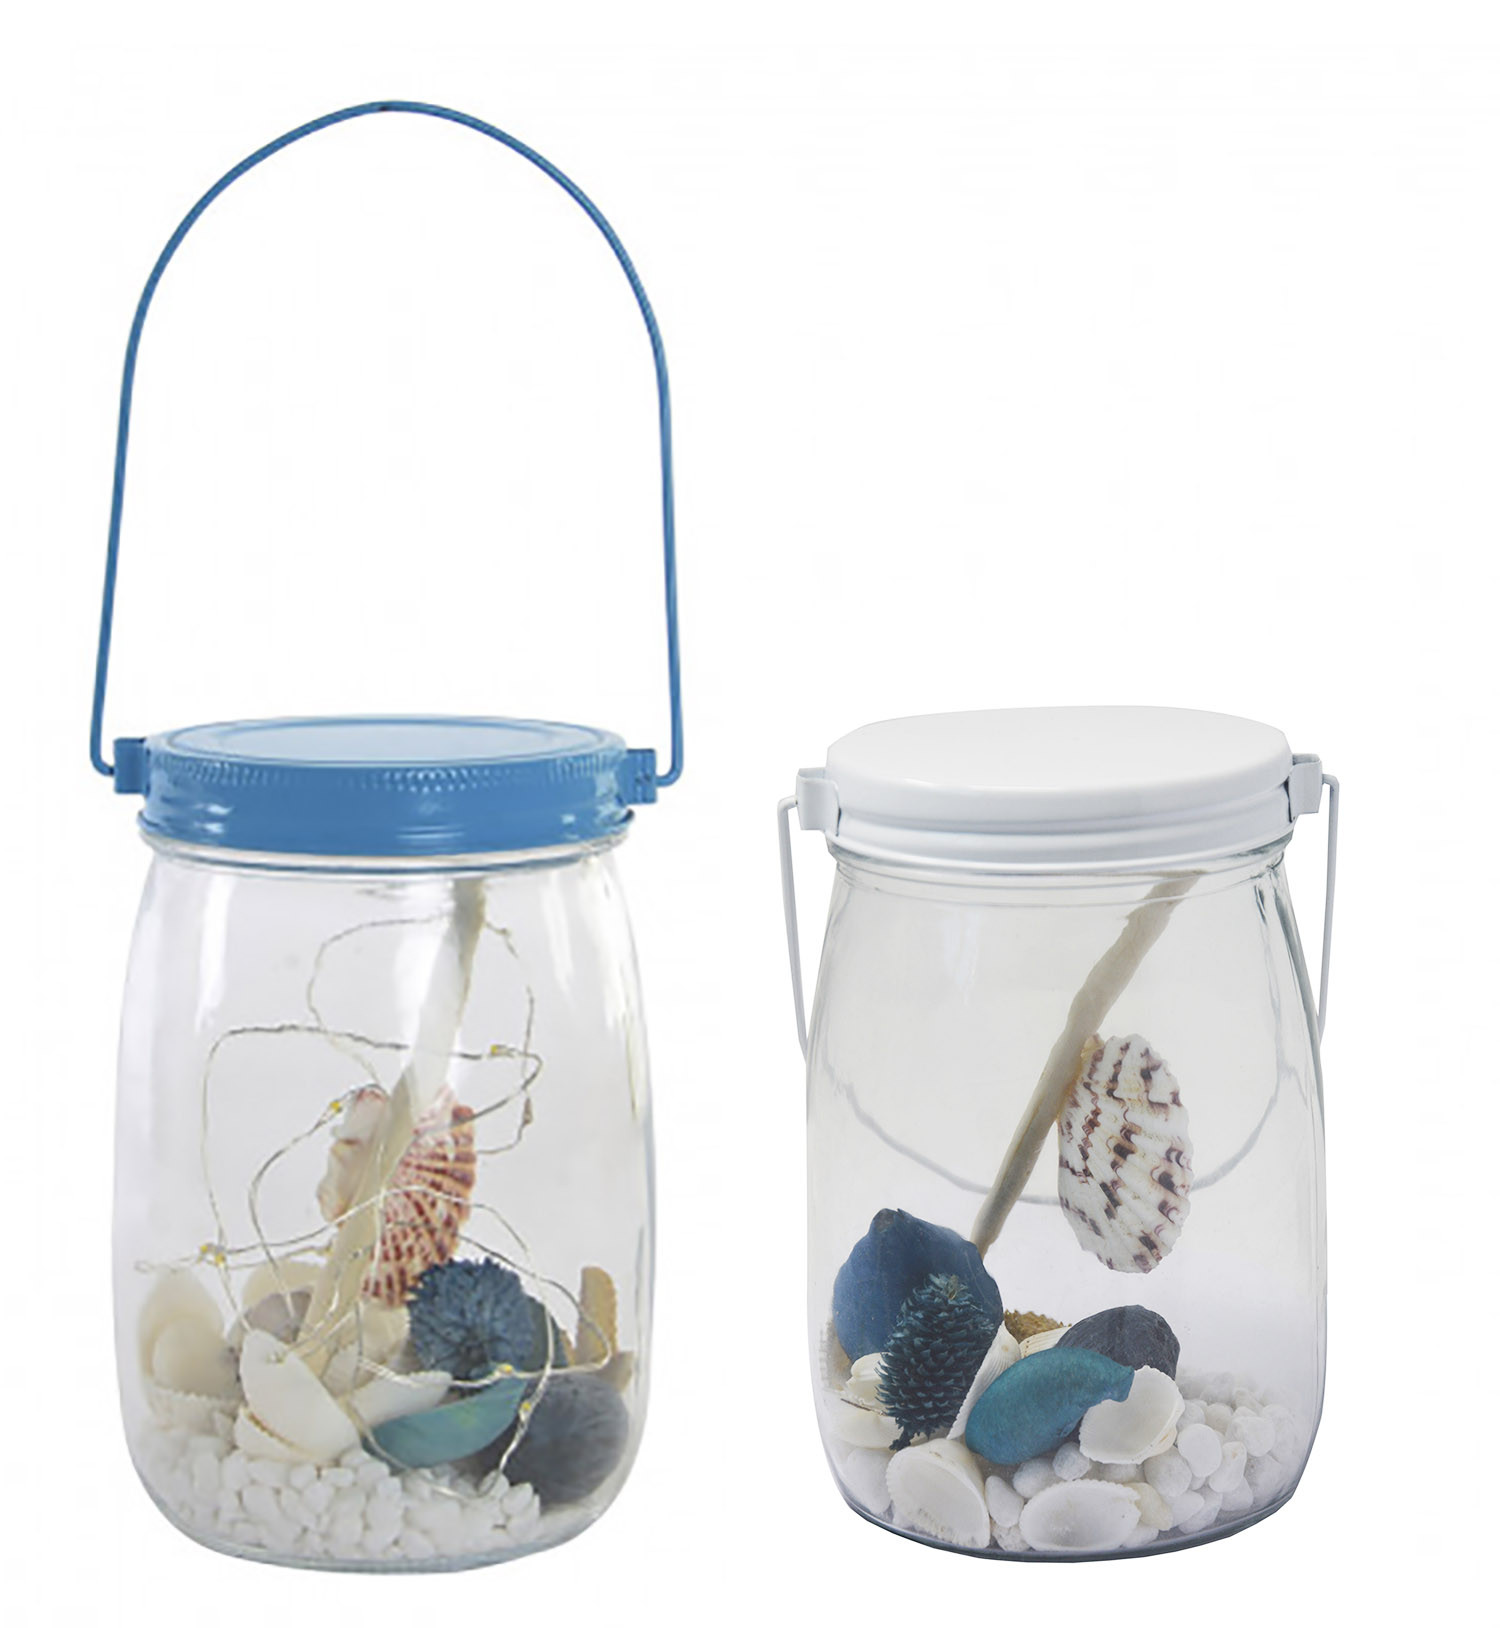 Bright decoration, made in a Glass jar, with Shells and LED Lights. Design Marine, with Modern style - Home and More